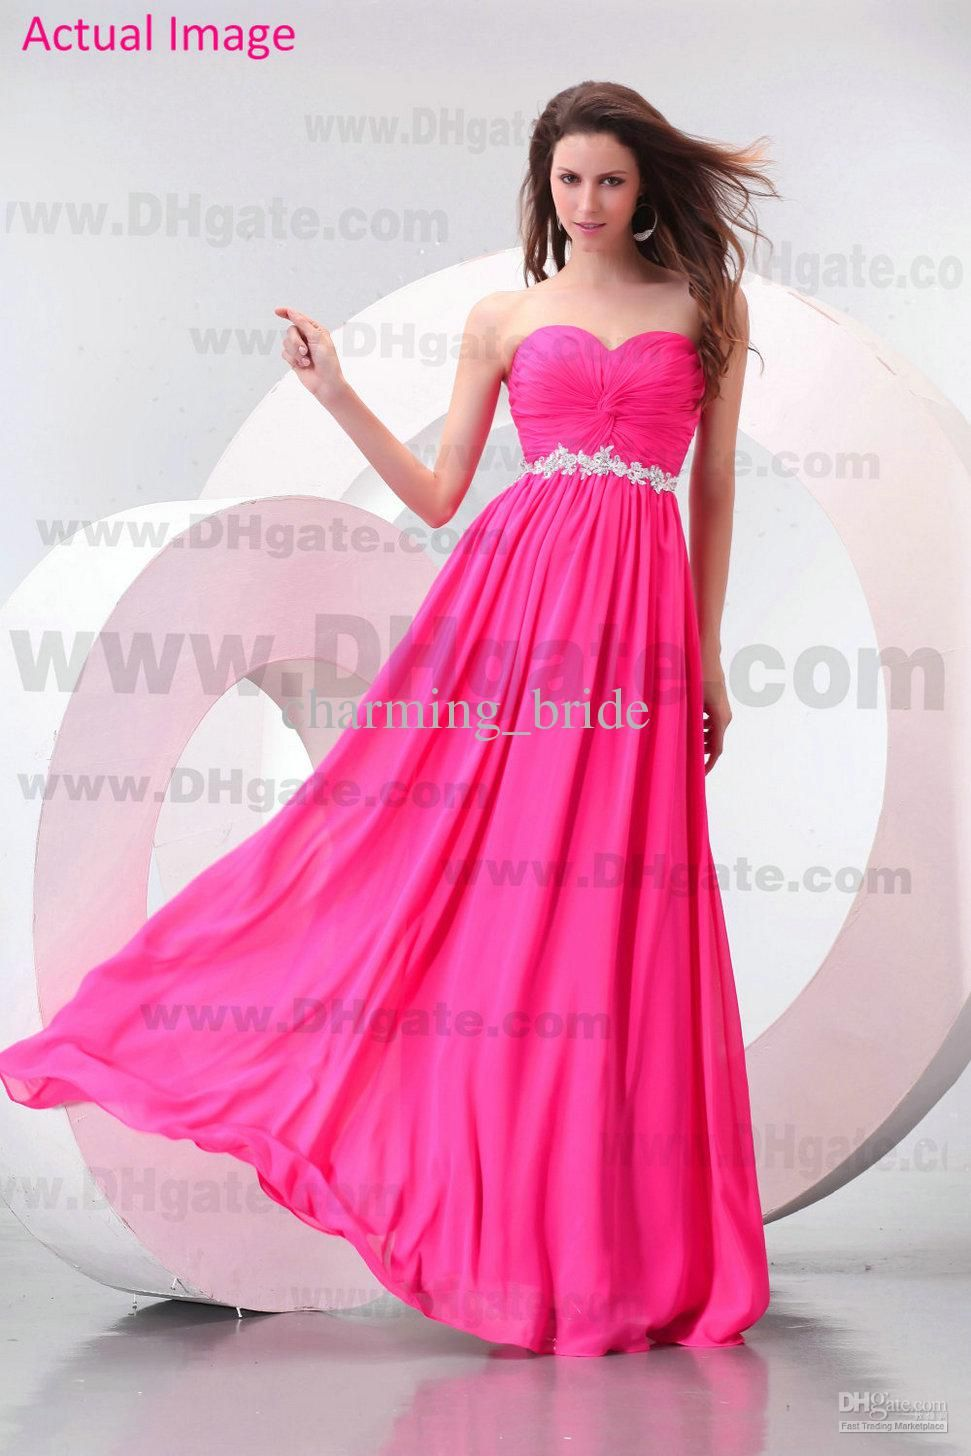 Hot Pink Bridesmaid Dress - Ocodea.com